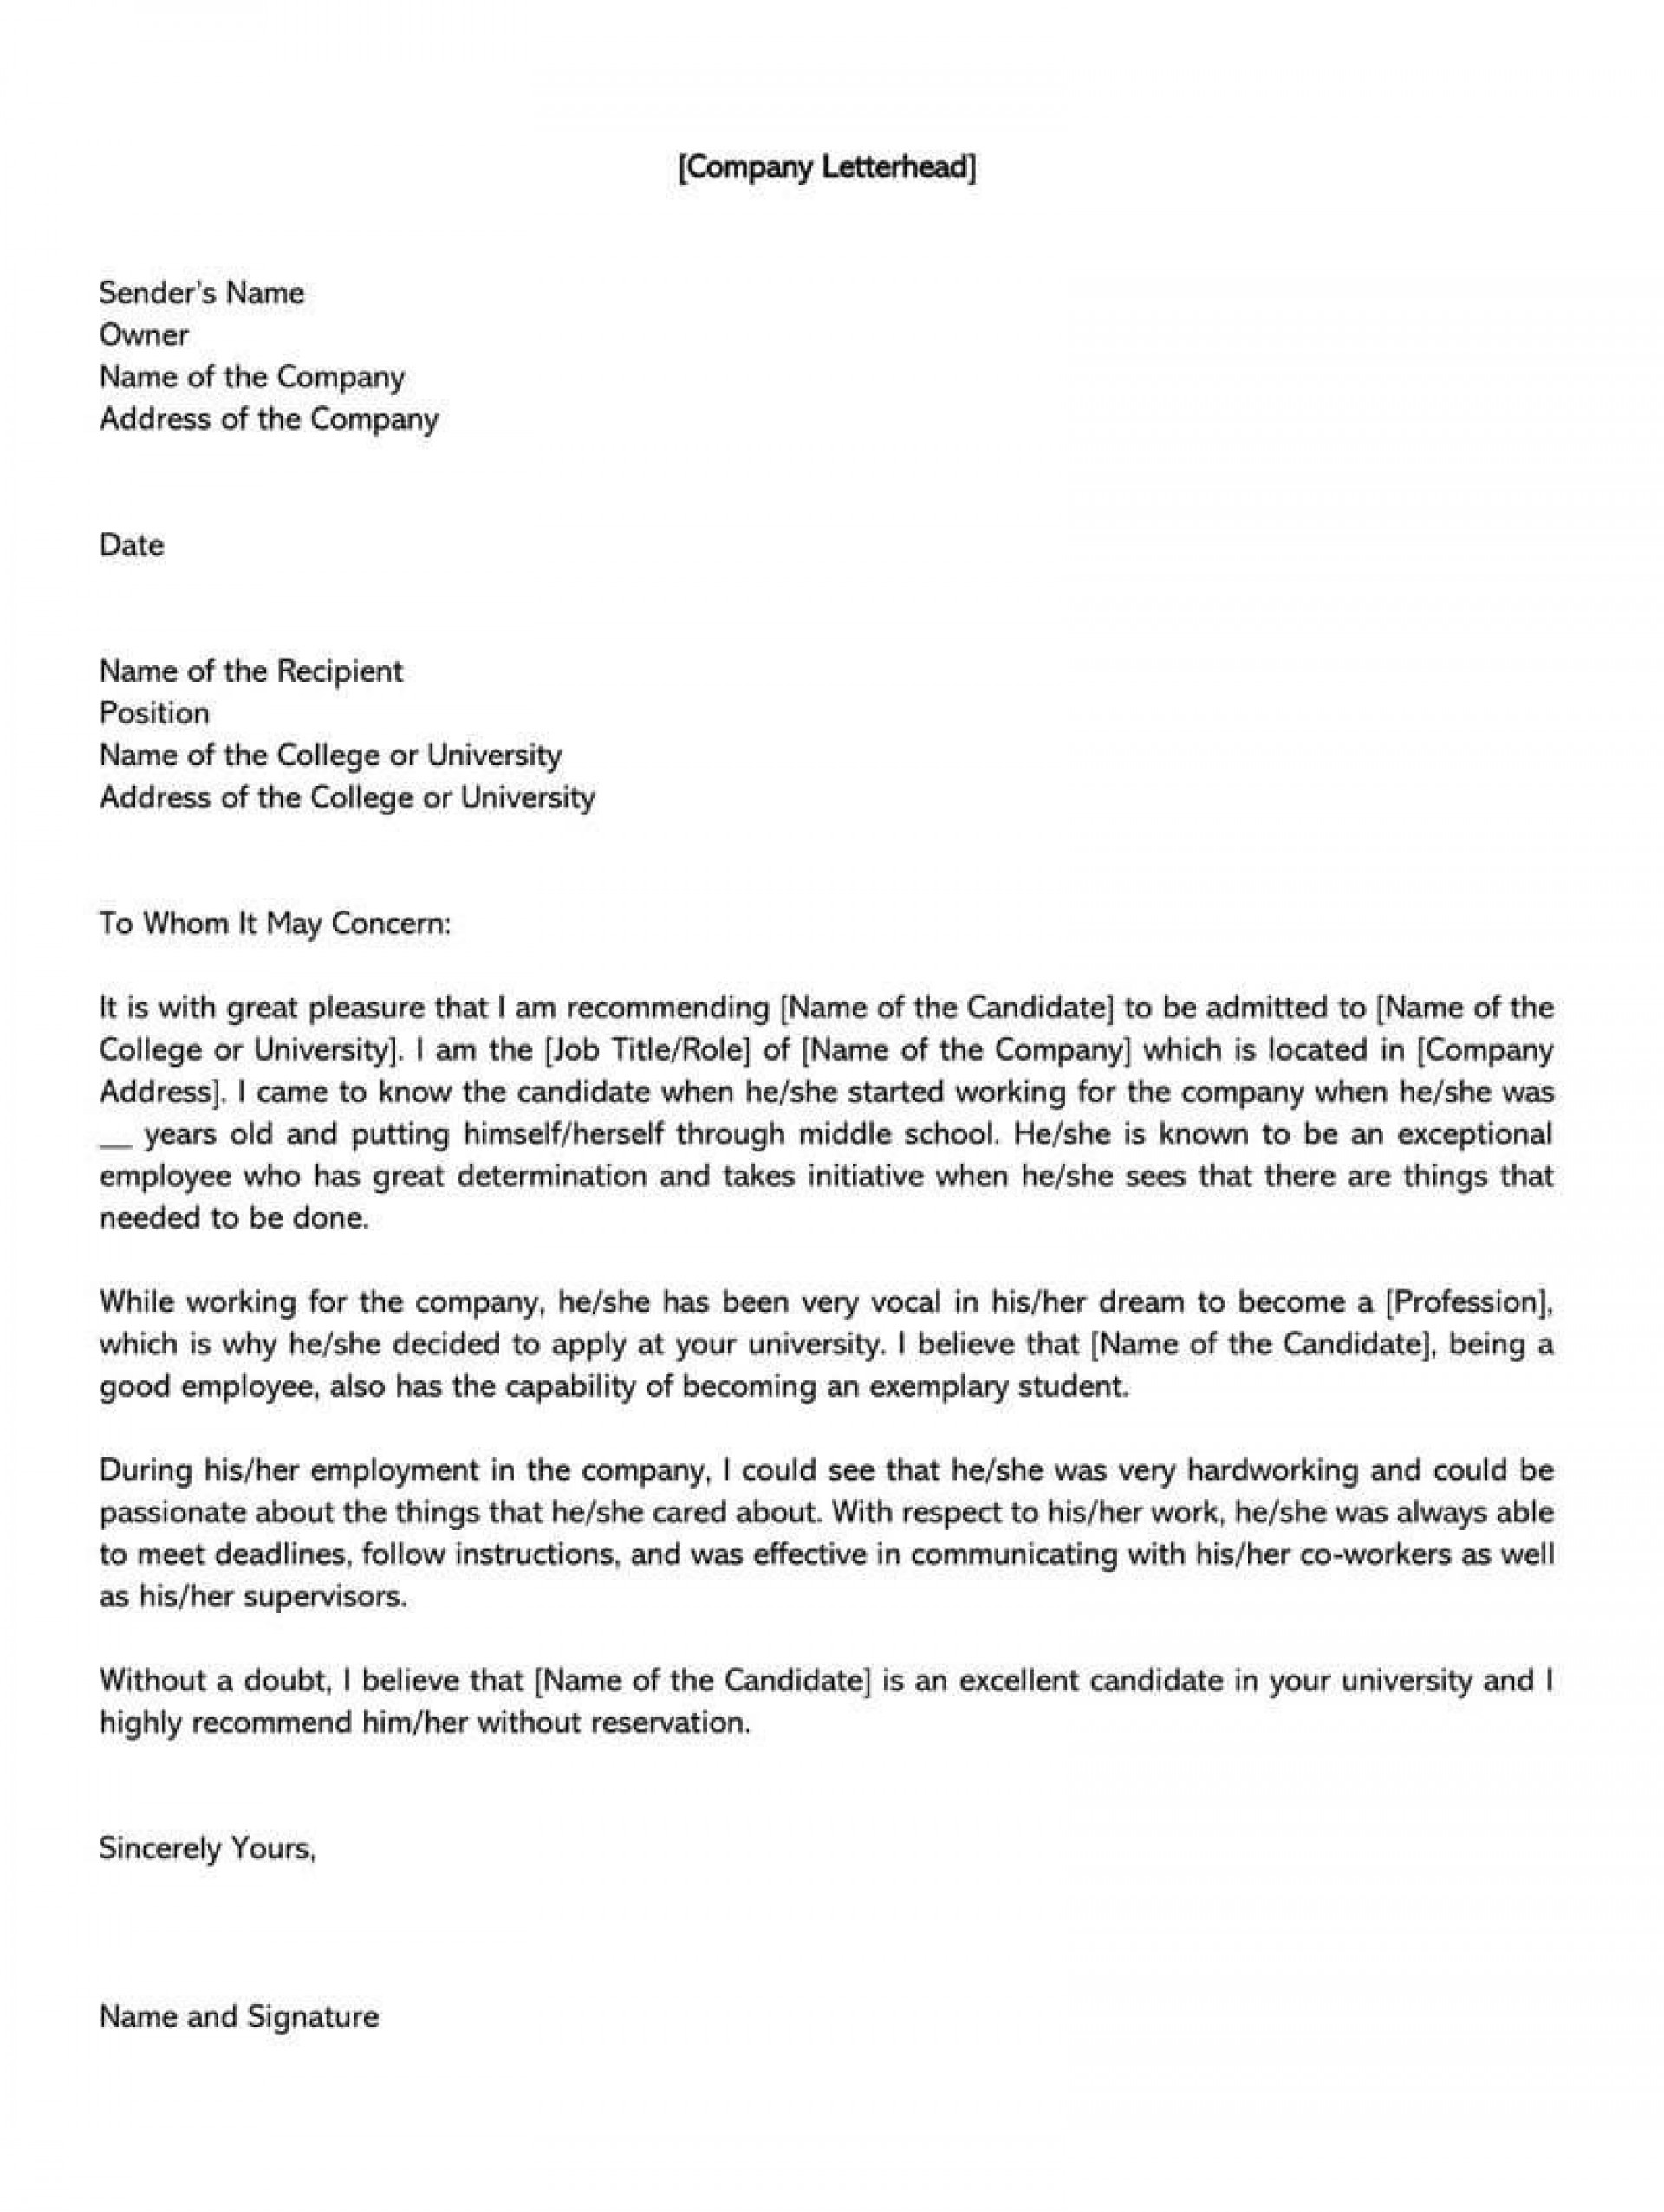 003 Rare Letter Of Recommendation Template For College Student Inspiration  Sample From Professor1920